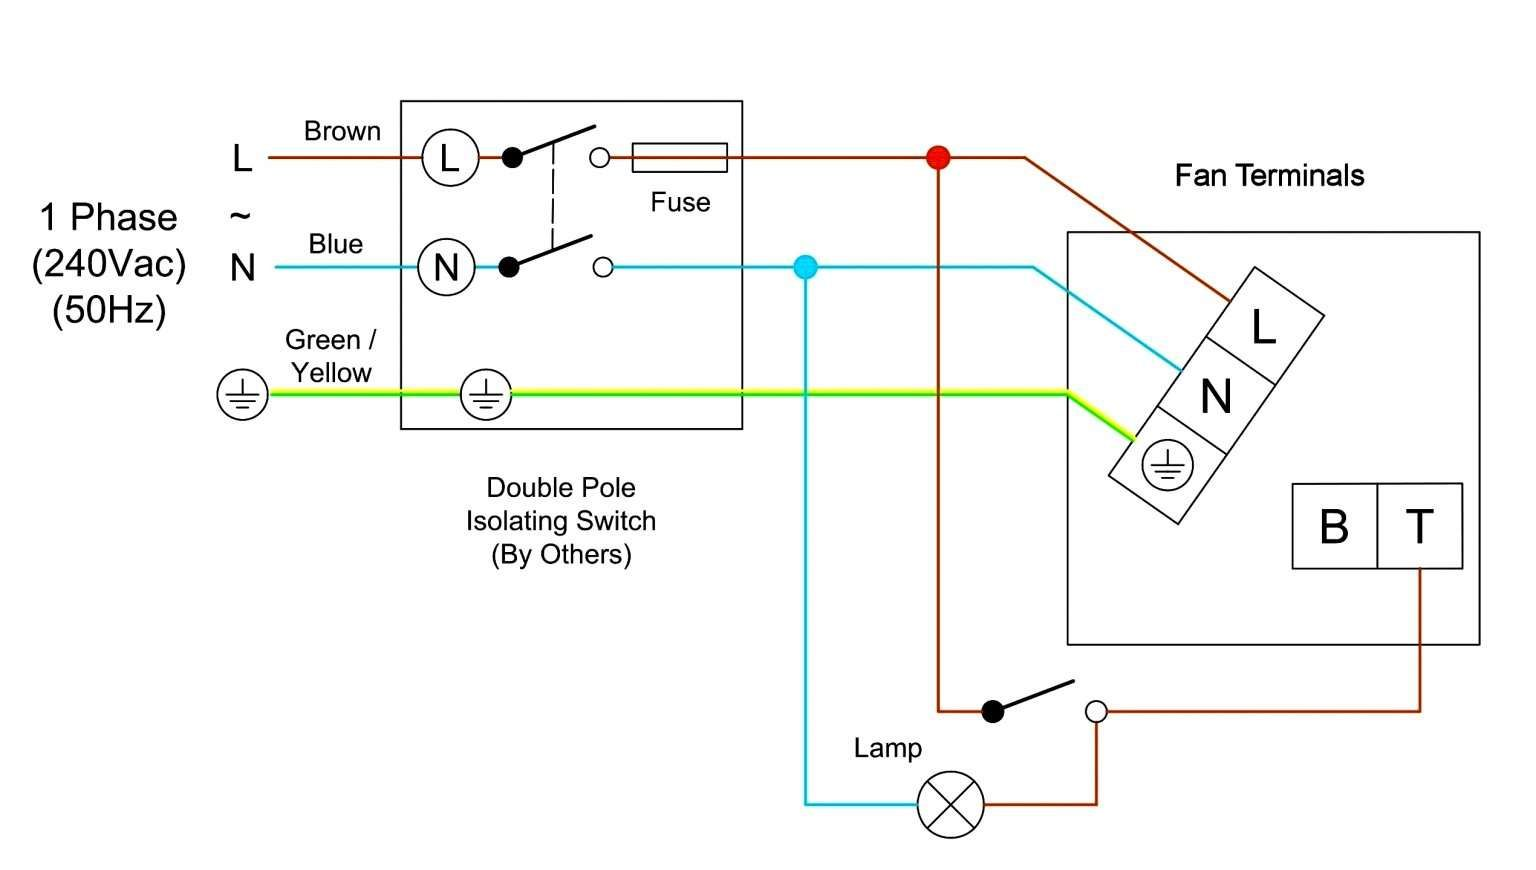 Wiring Diagram Bathroom Lovely Wiring Diagram Bathroom Bathroom Fan Light Wiring Diagram Mikulskilawoffice Extractor Fans Bathroom Extractor Fan Bathroom Fan